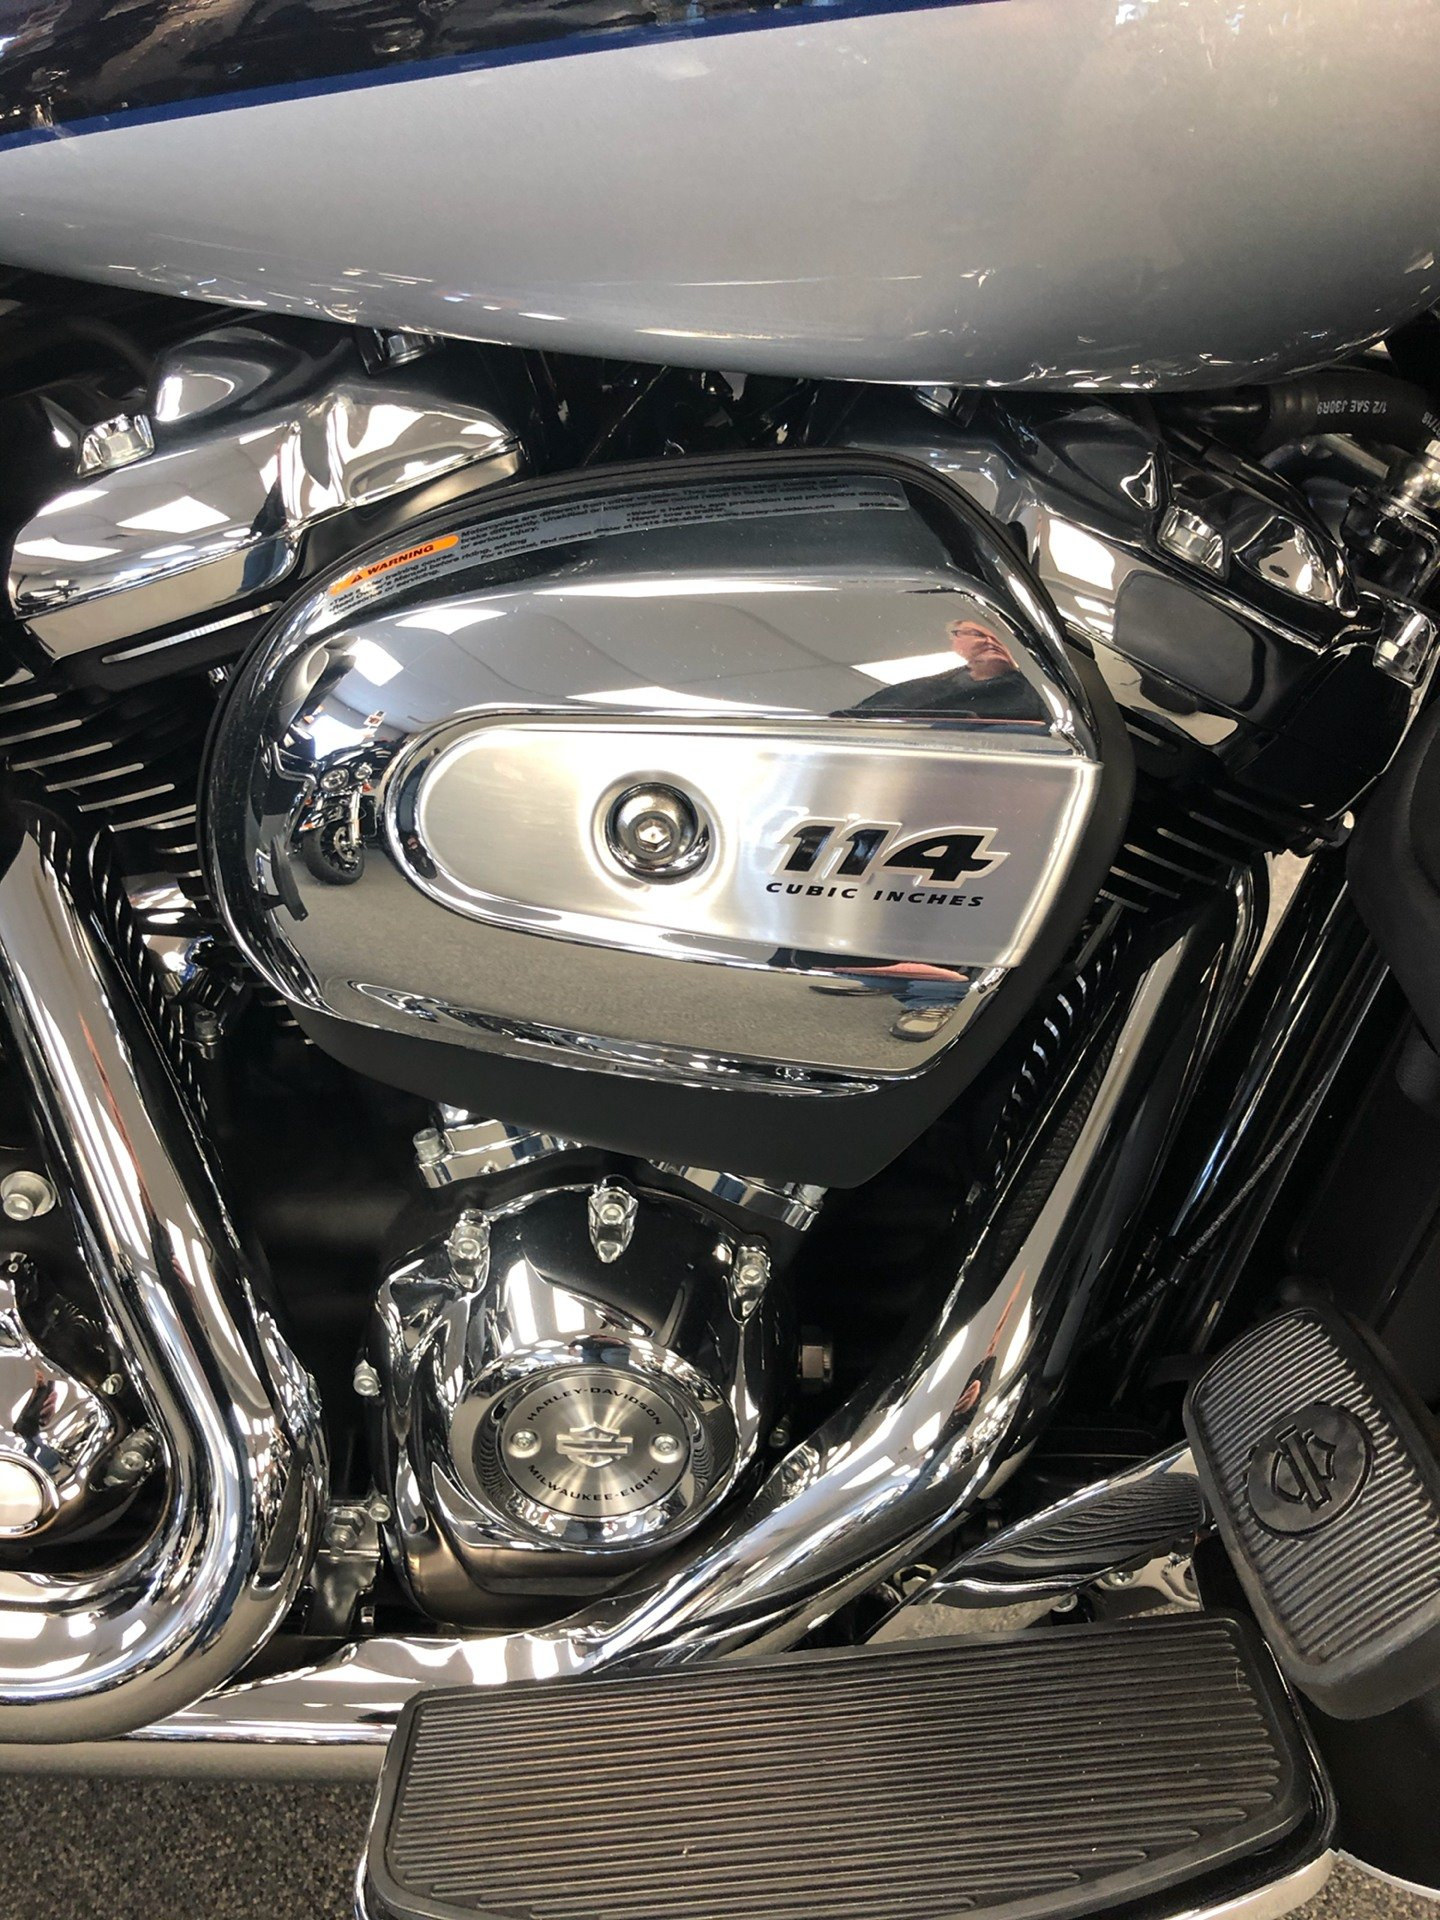 2019 Harley-Davidson Ultra Limited in Alexandria, Minnesota - Photo 2